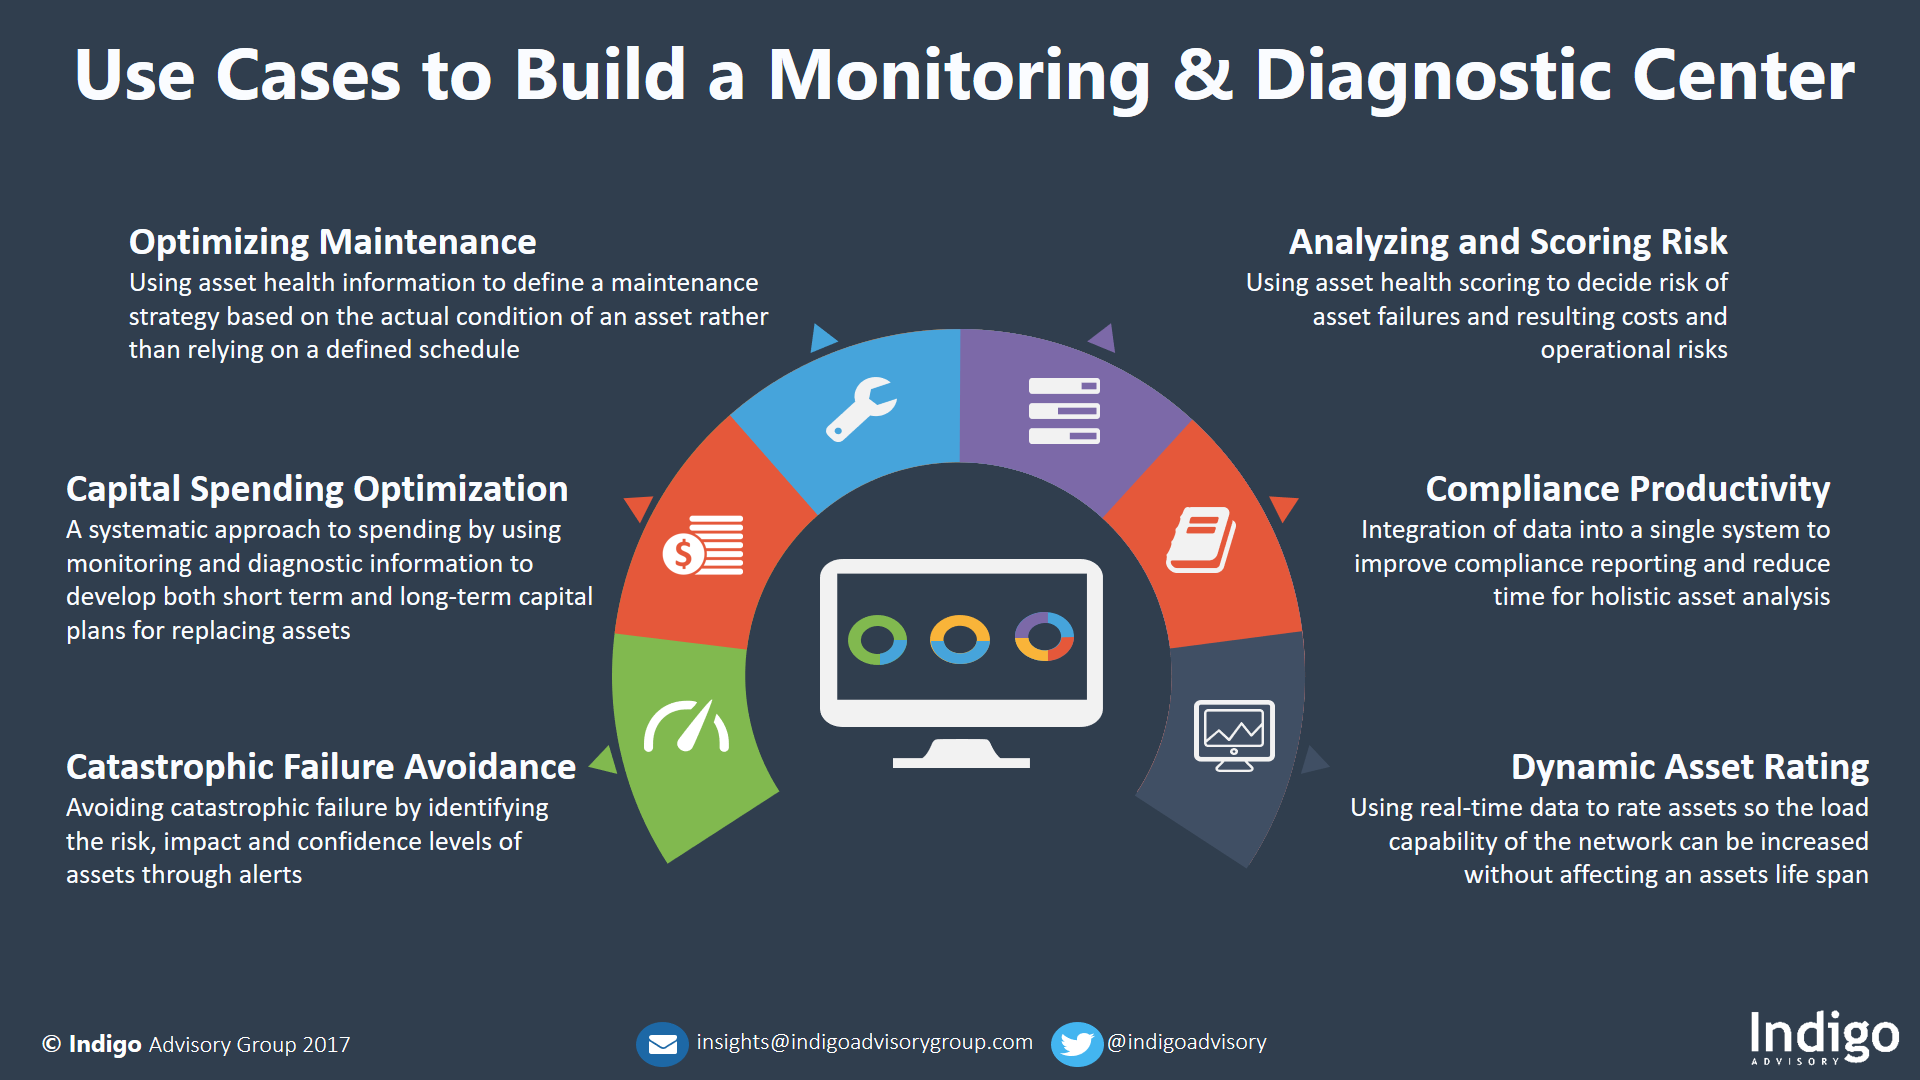 Use Cases to Build a Monitoring & Diagnostic Center